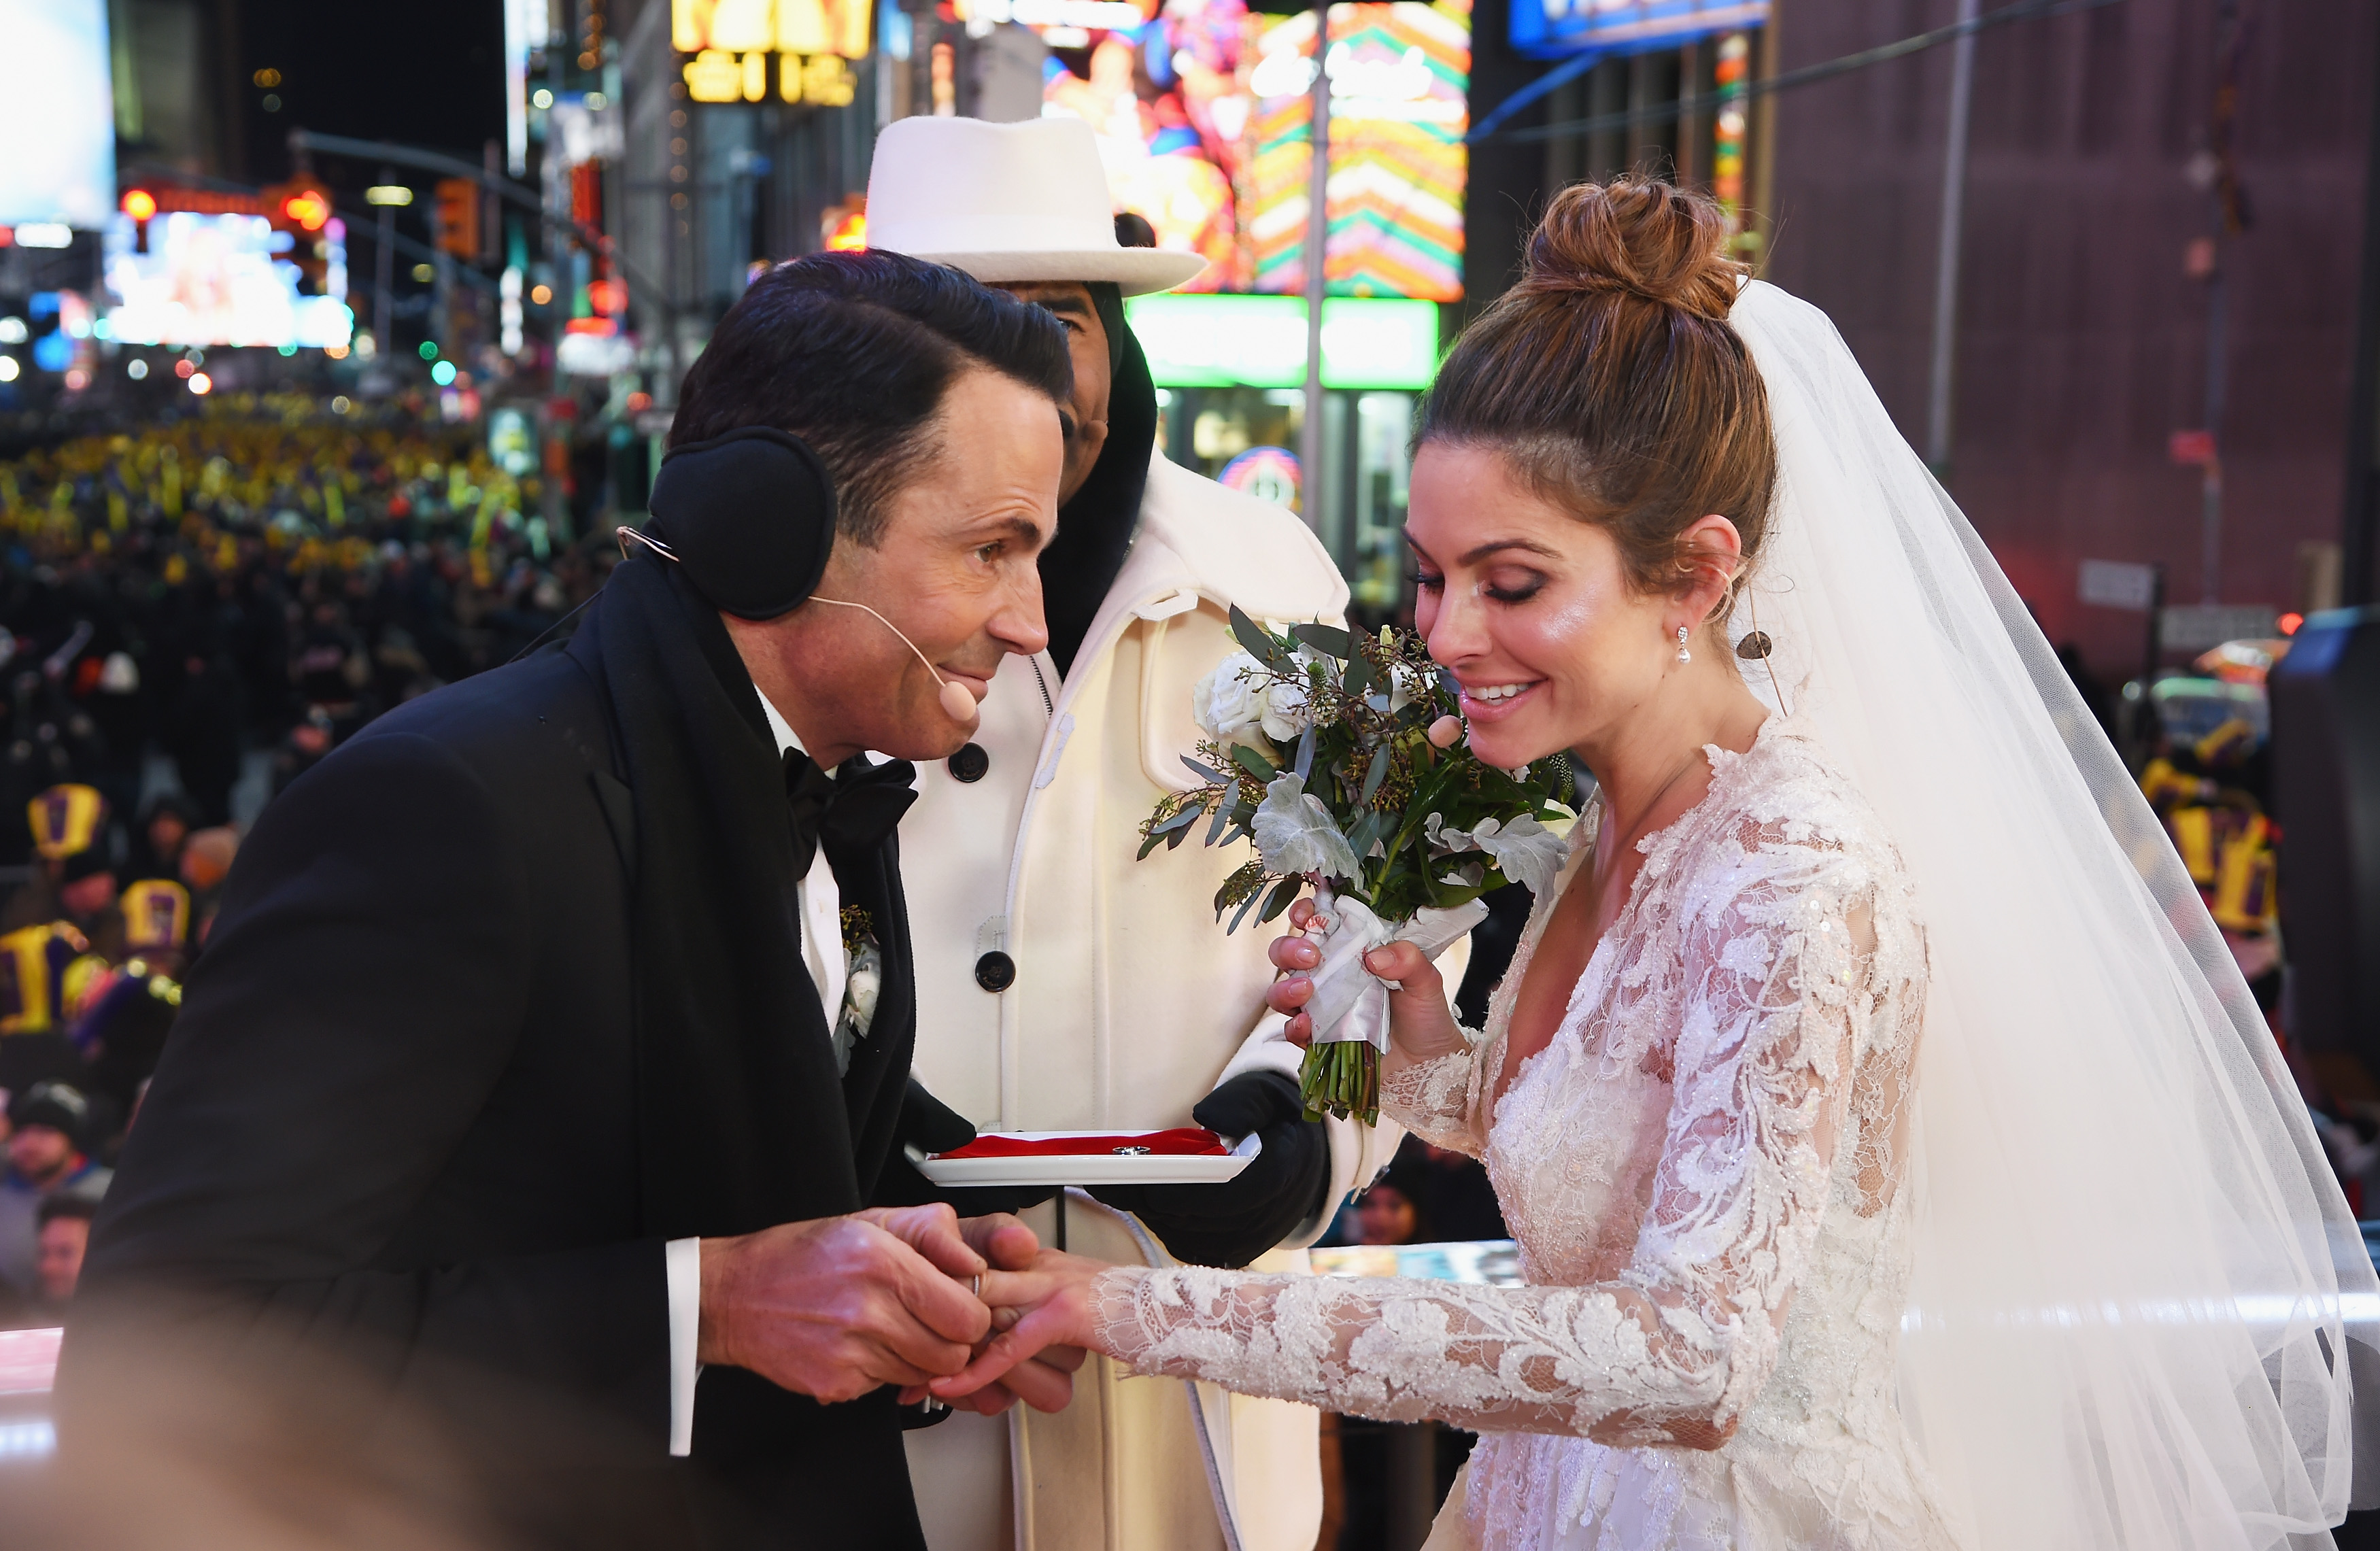 Maria Menounos, Keven Undergaro Wed In Times Square On New Year's Eve